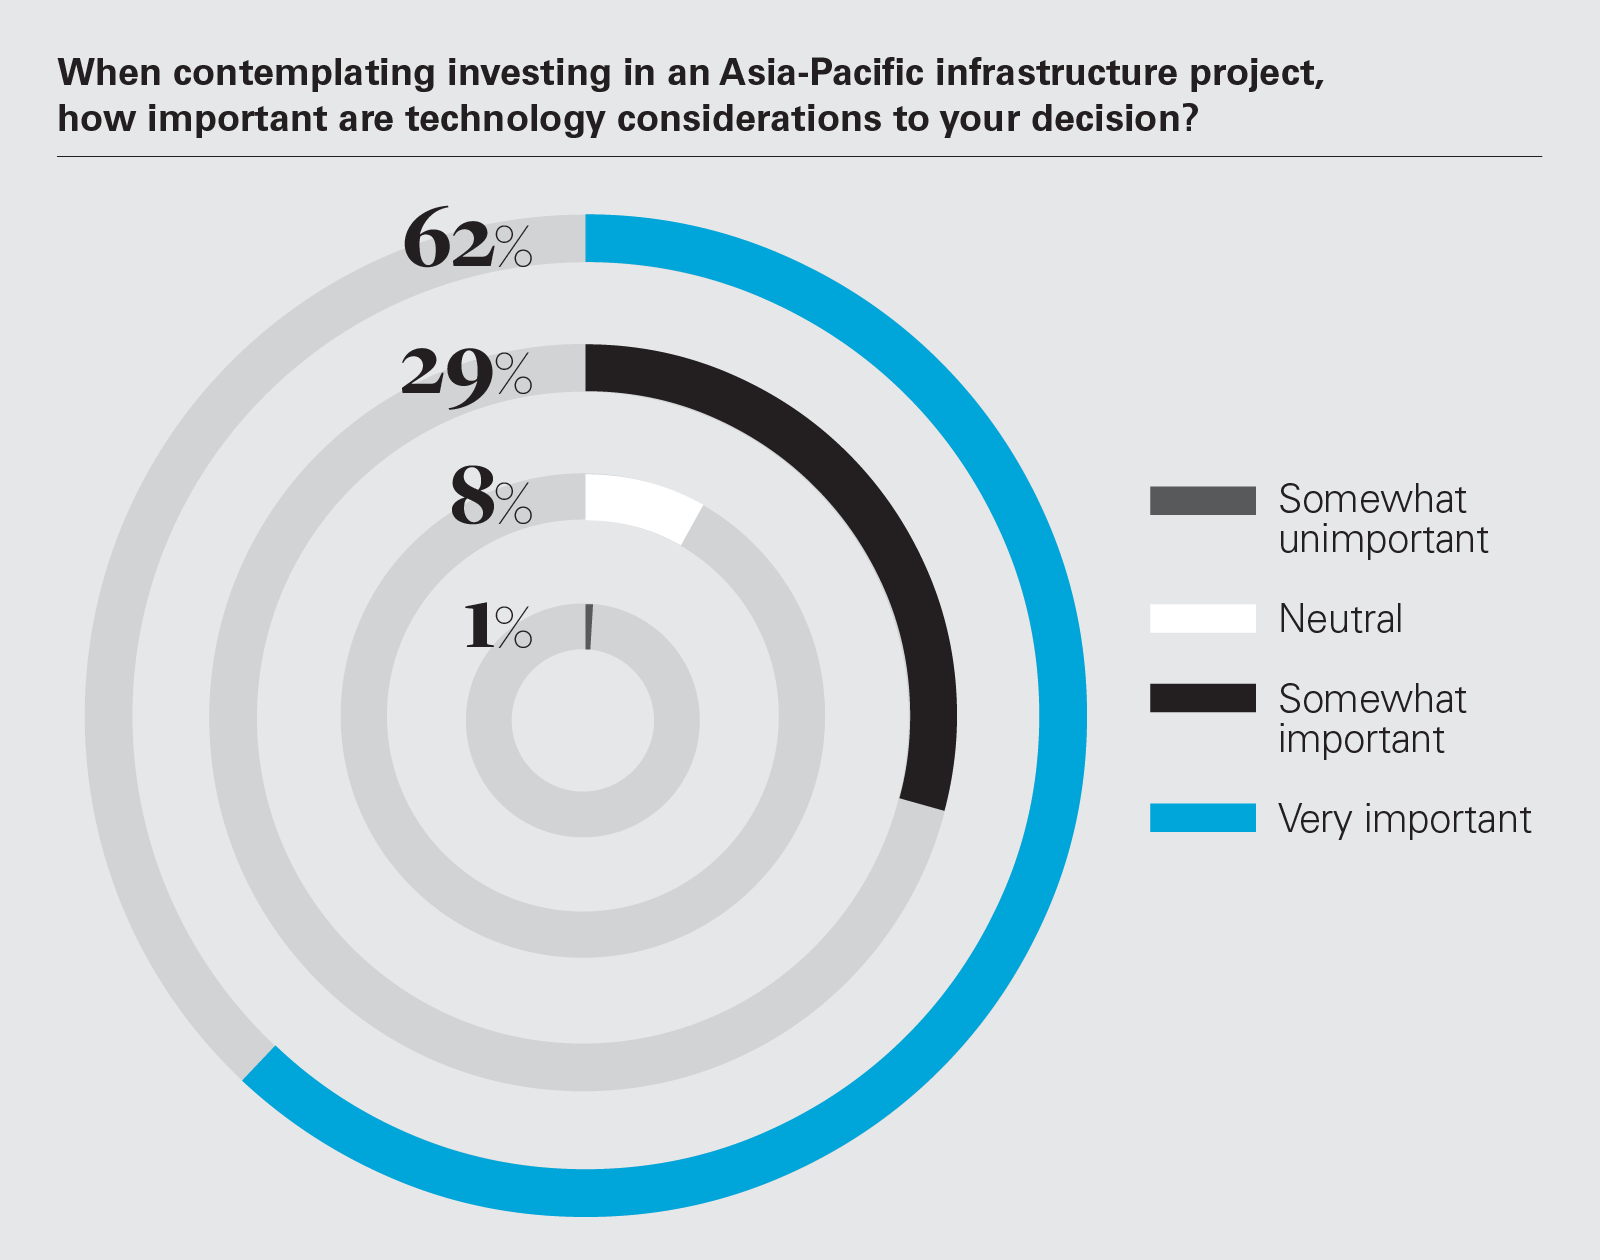 When contemplating investing in an Asia-Pacific infrastructure project, how important are technology considerations to your decision?